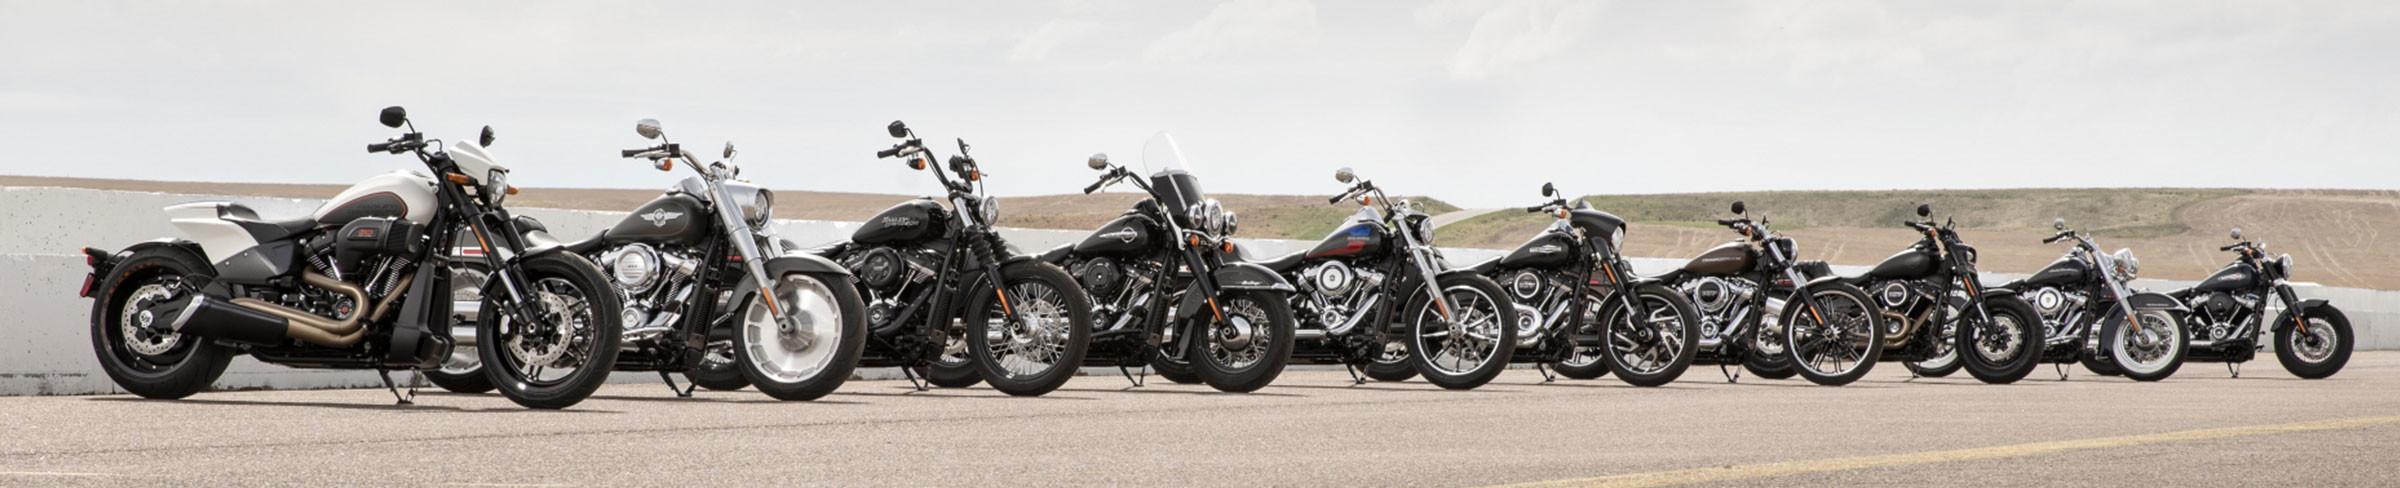 All Motorcycles for sale at Farrow Harley-Davidson® in Ohio